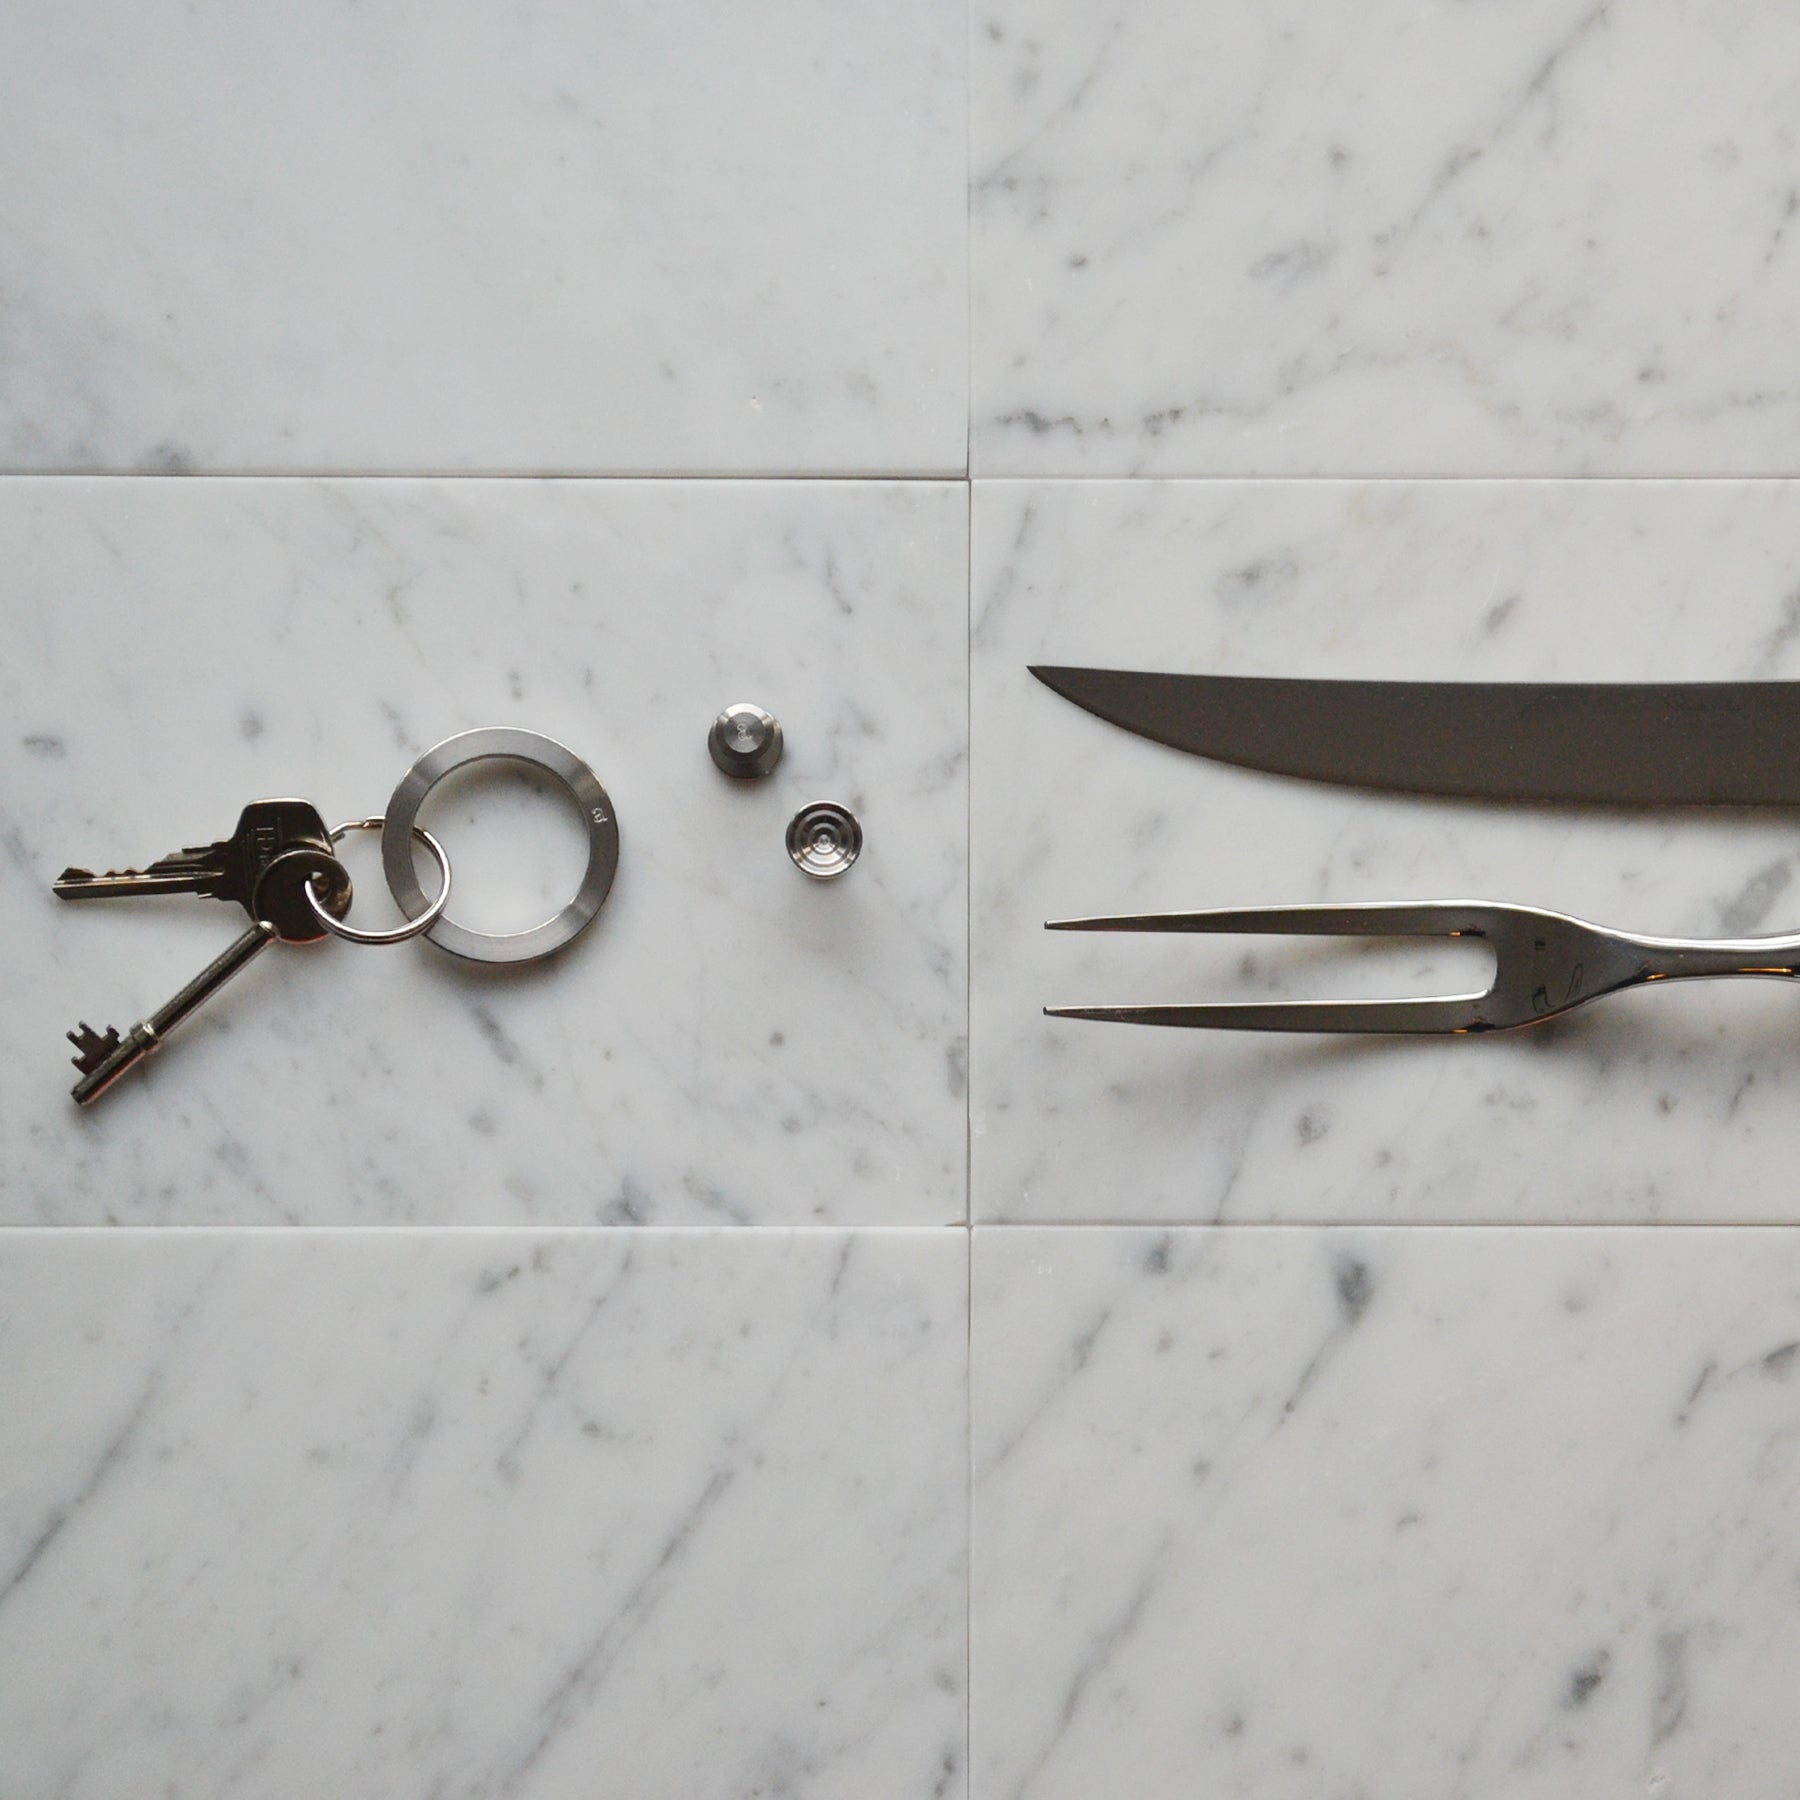 Steel cufflinks | Steel key ring | Alice Made This | Hawksmoor